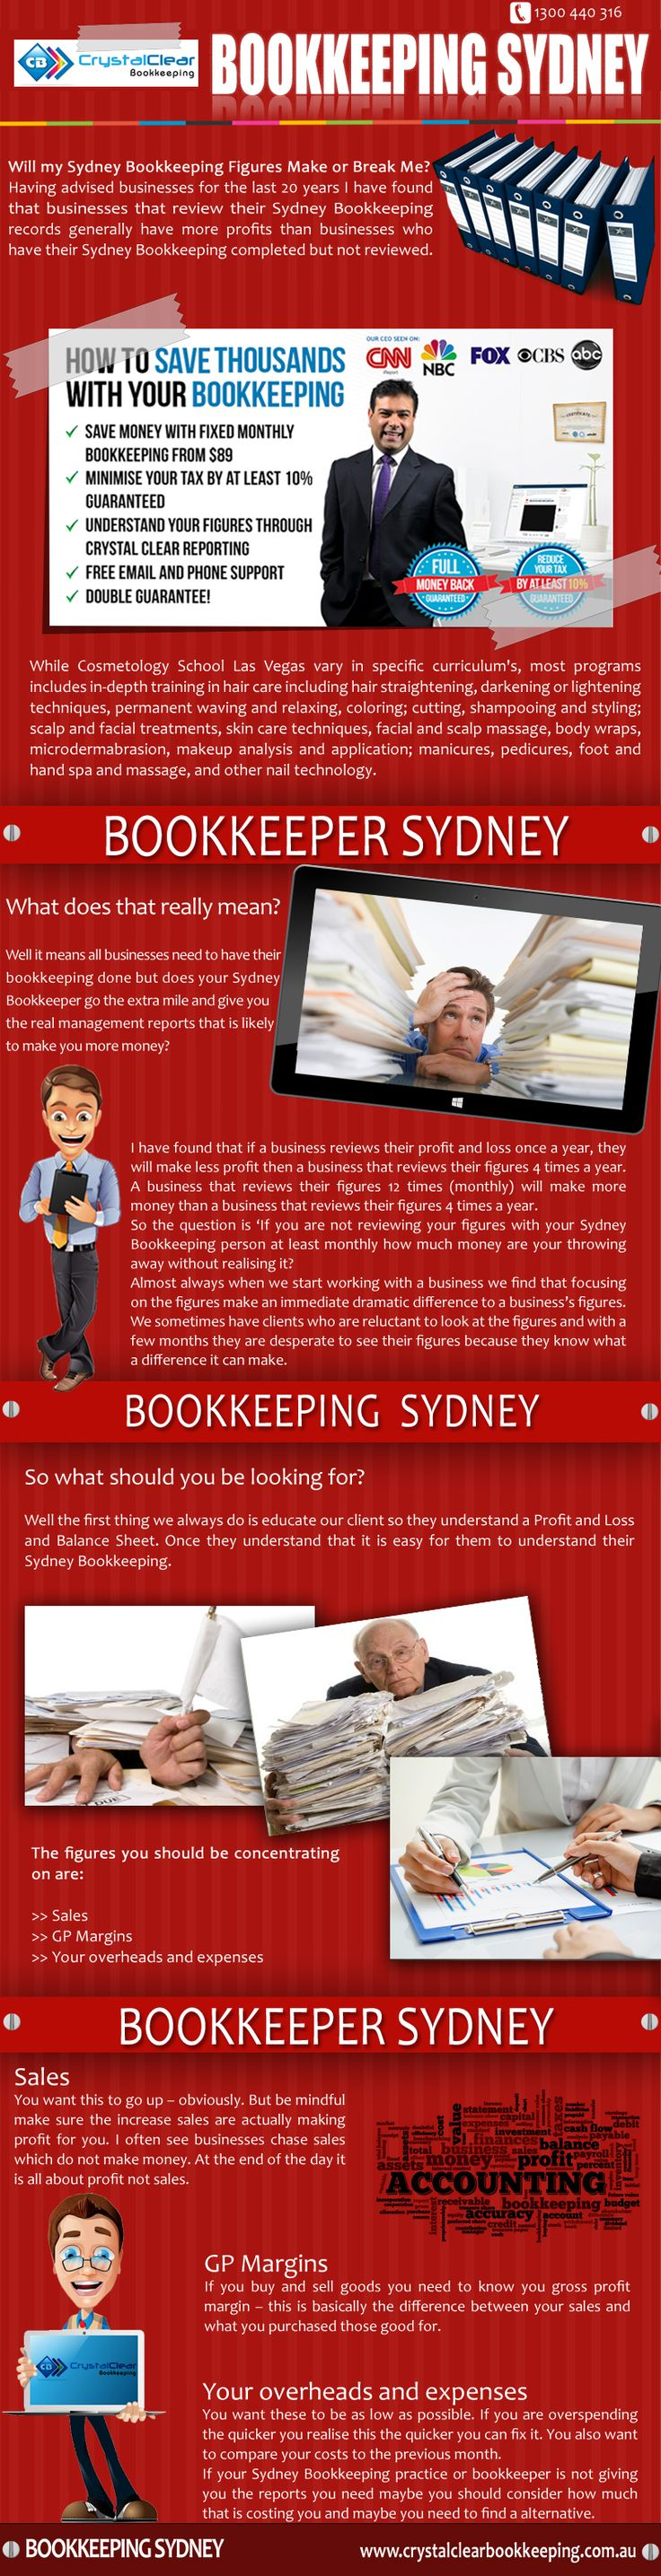 Bookkeeper Sydney